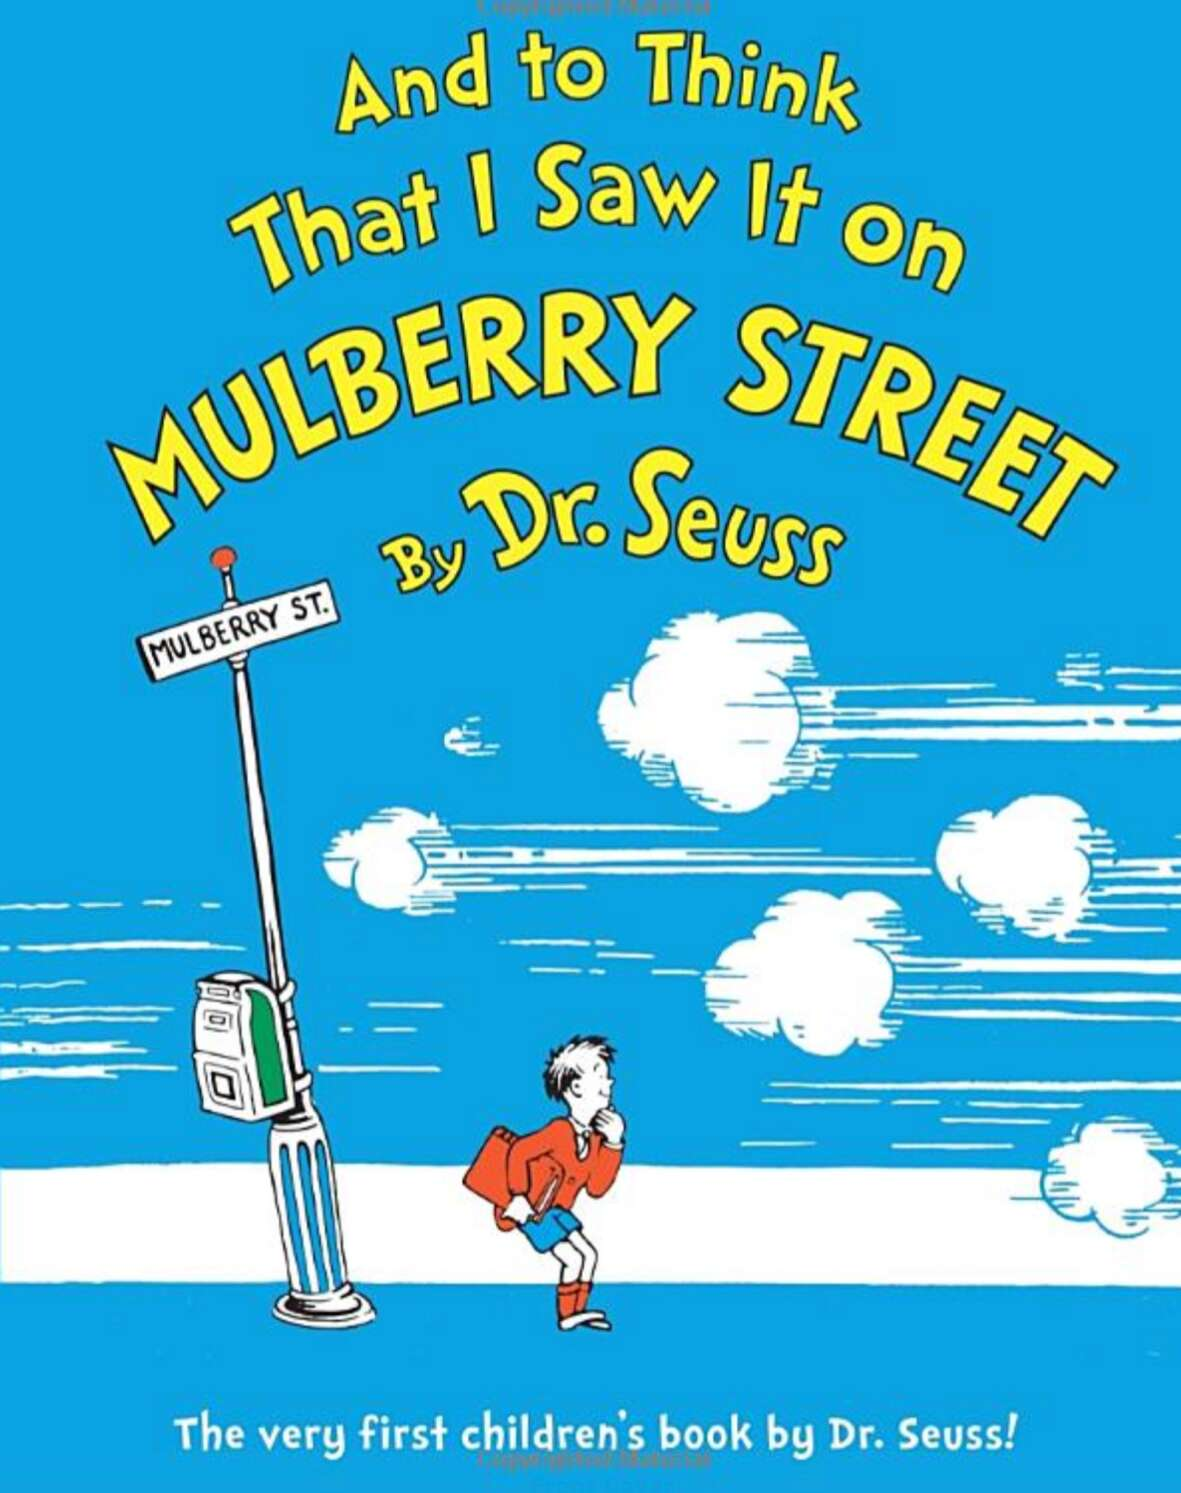 Park City Library discussion will focus on Dr. Seuss publisher's decision to stop publishing books deemed offensive